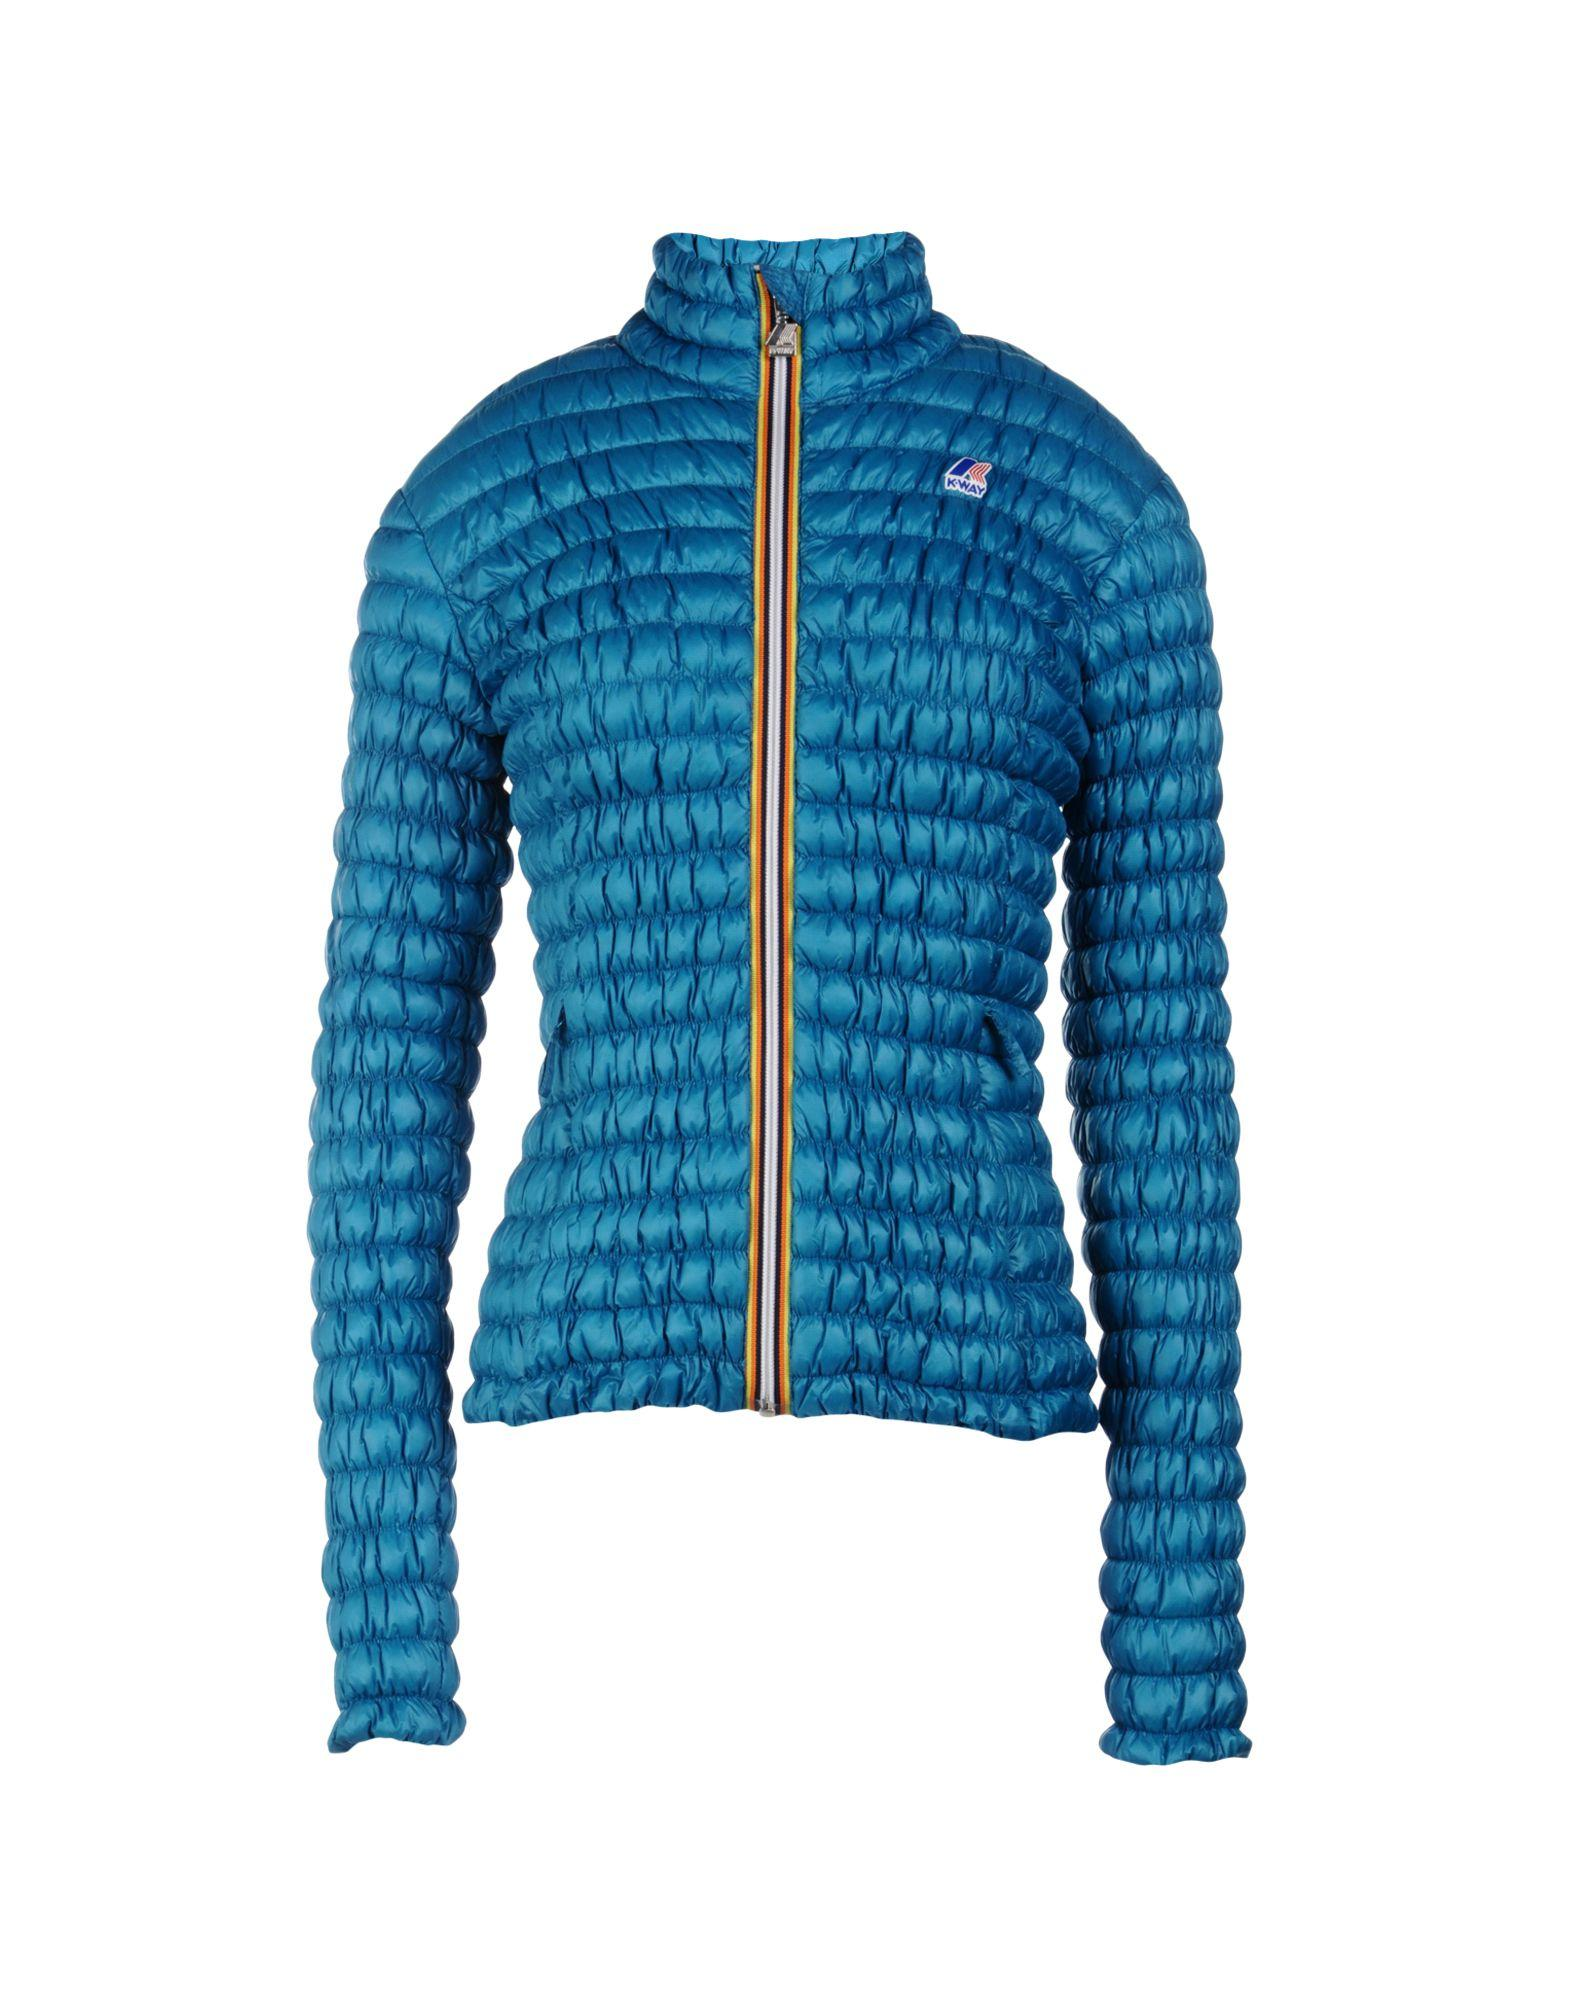 K-way Down Jacket In Turquoise